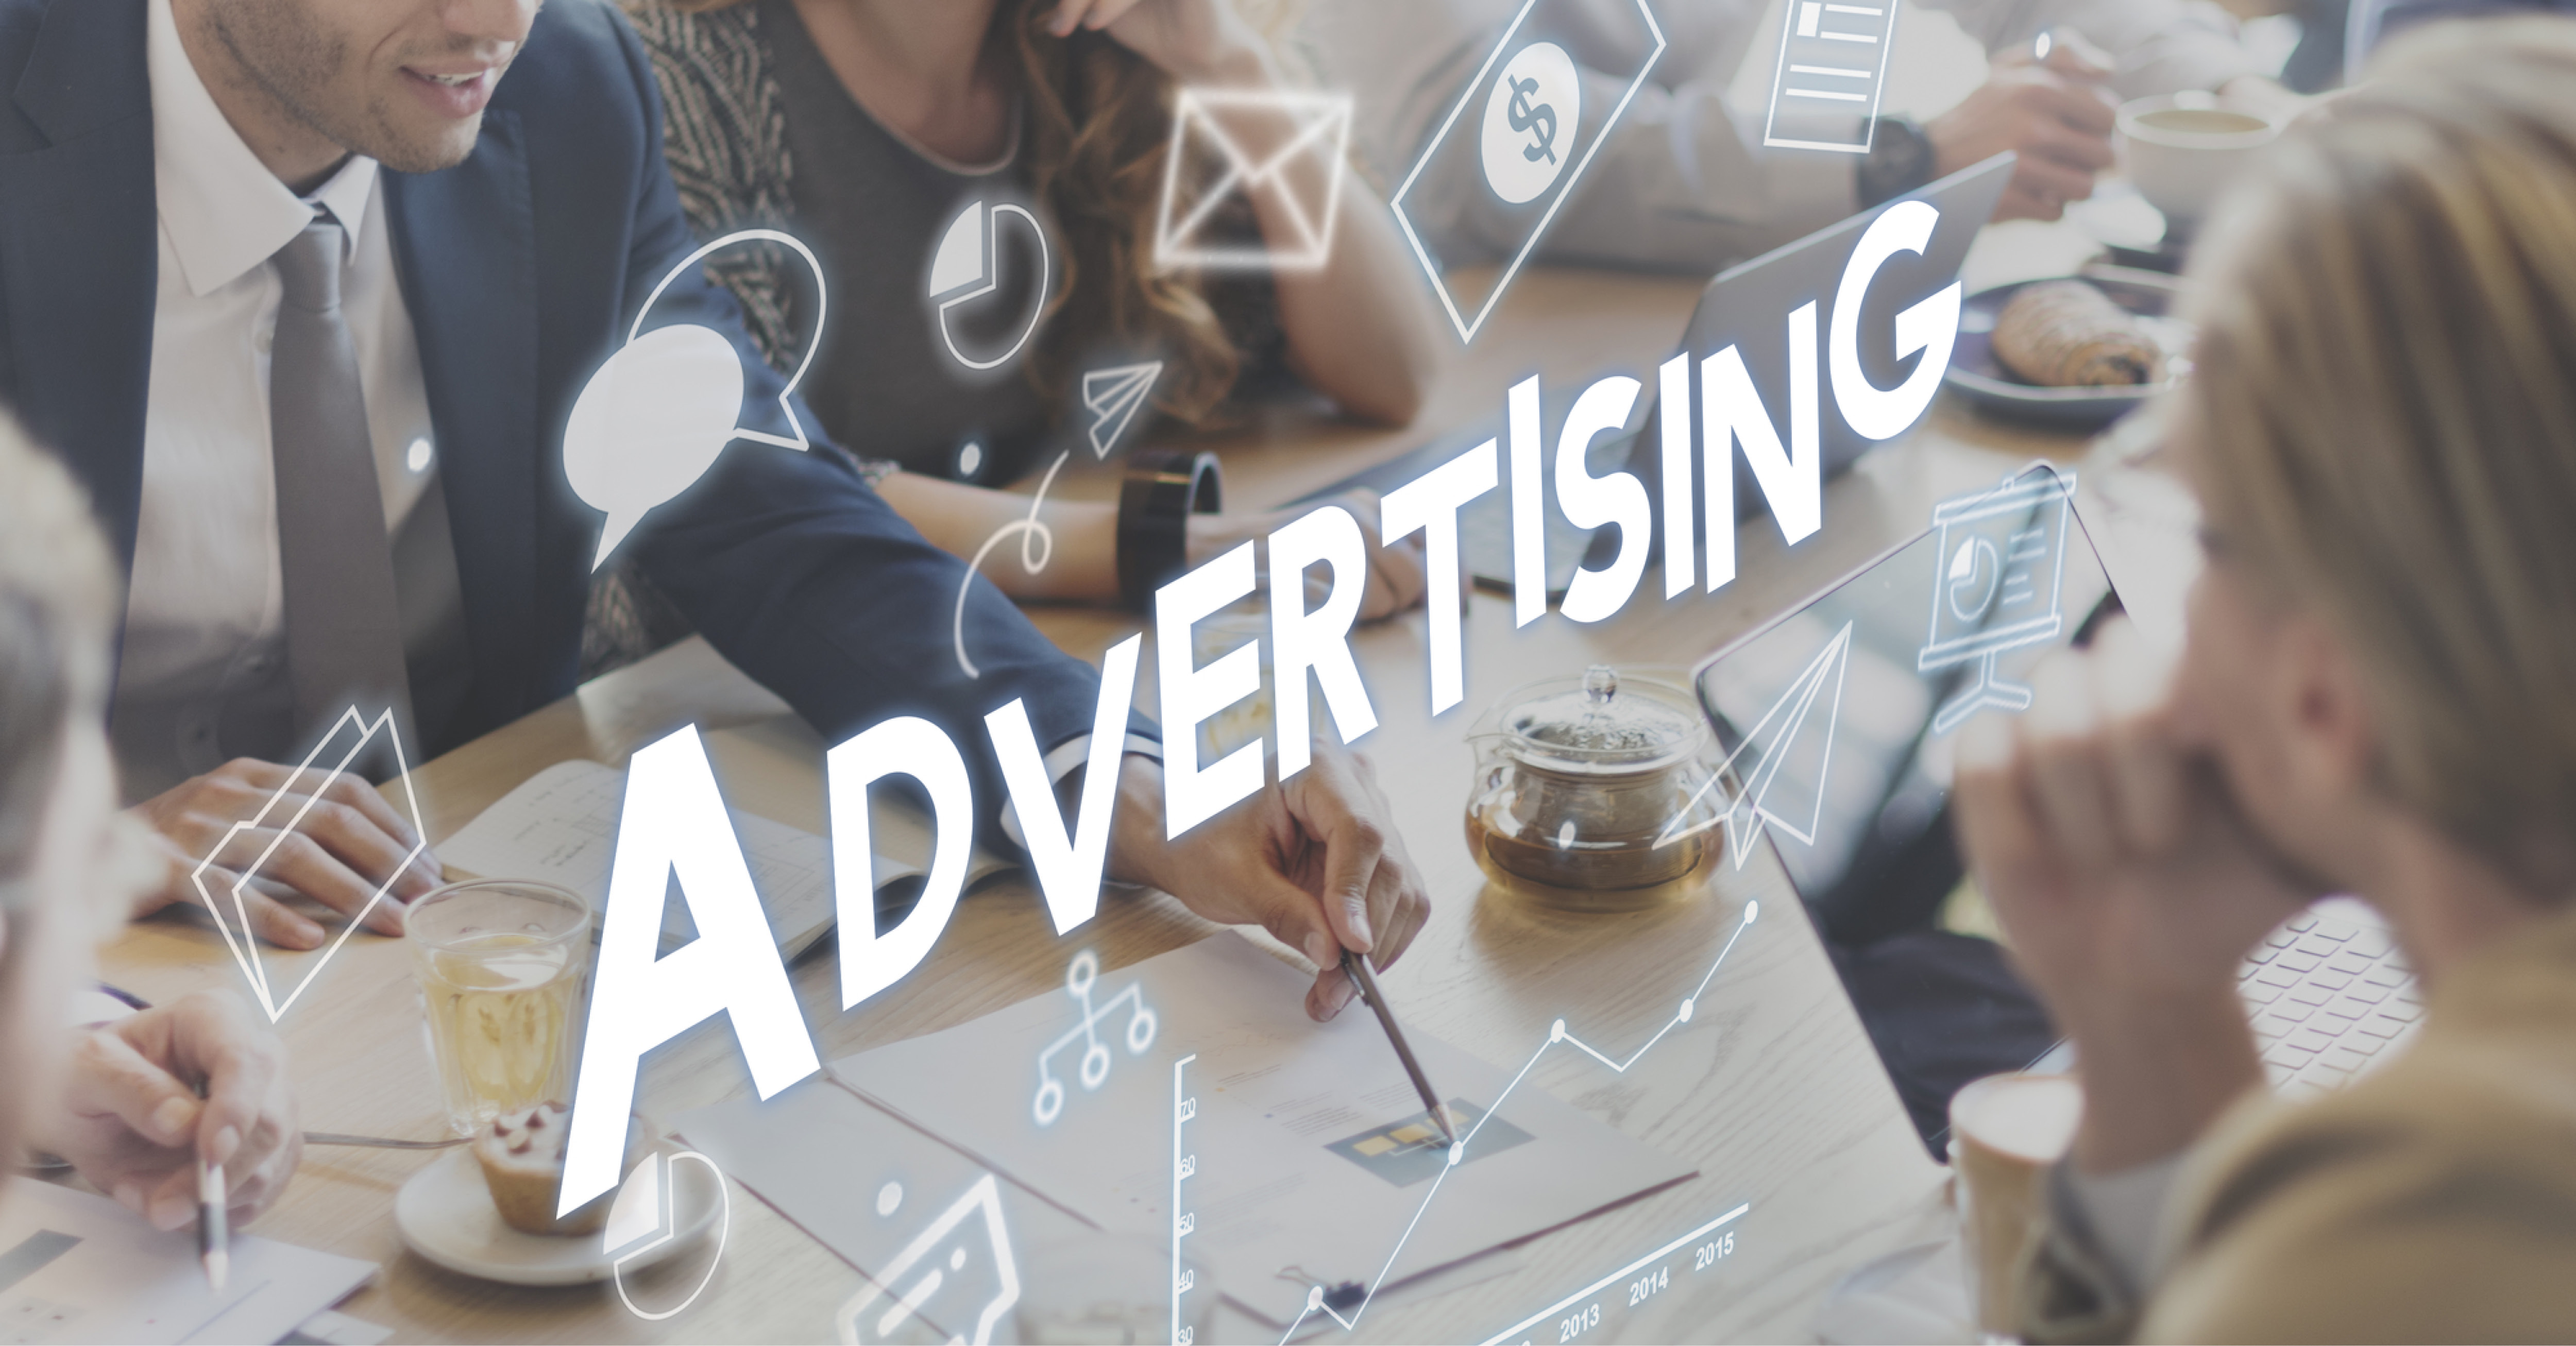 3 Tantalizing Advertising Strategies For Restaurants